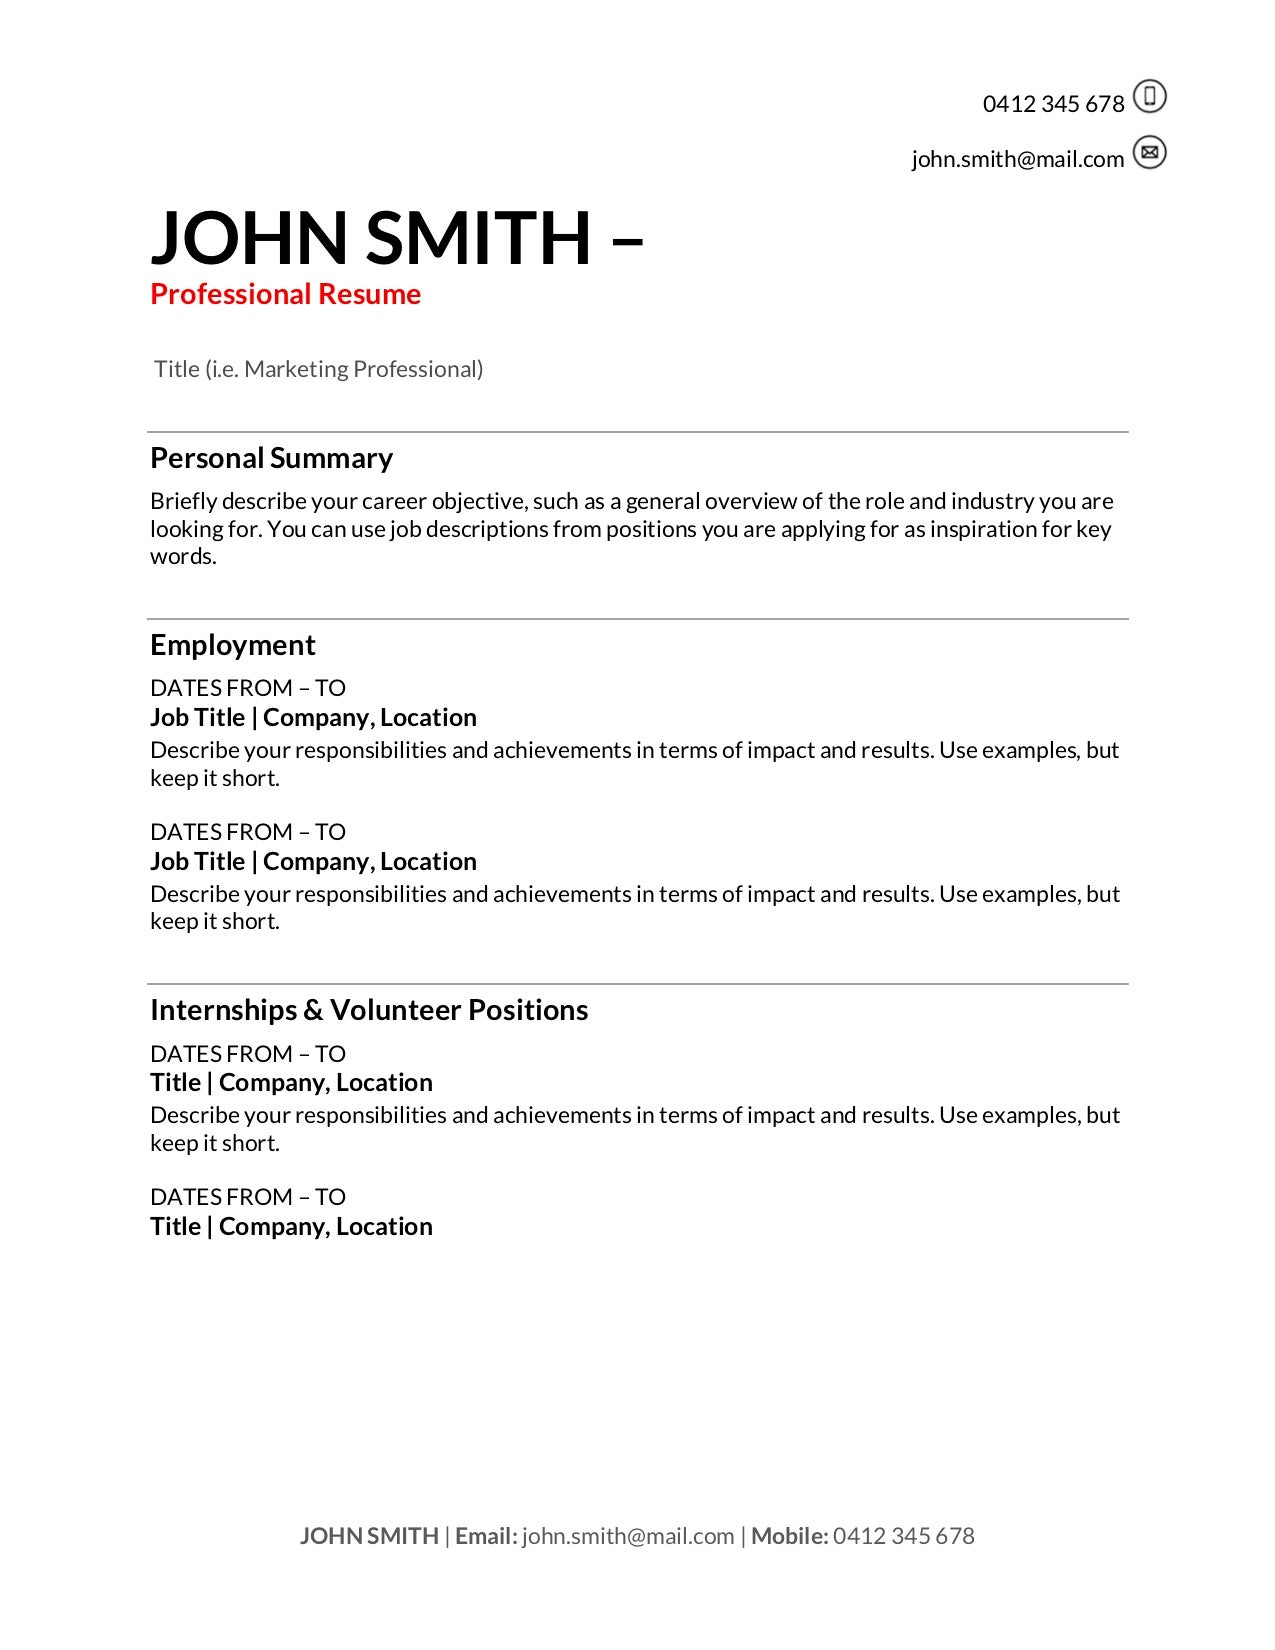 free resume templates to write in training au examples after first job model sample Resume Resume Examples After First Job